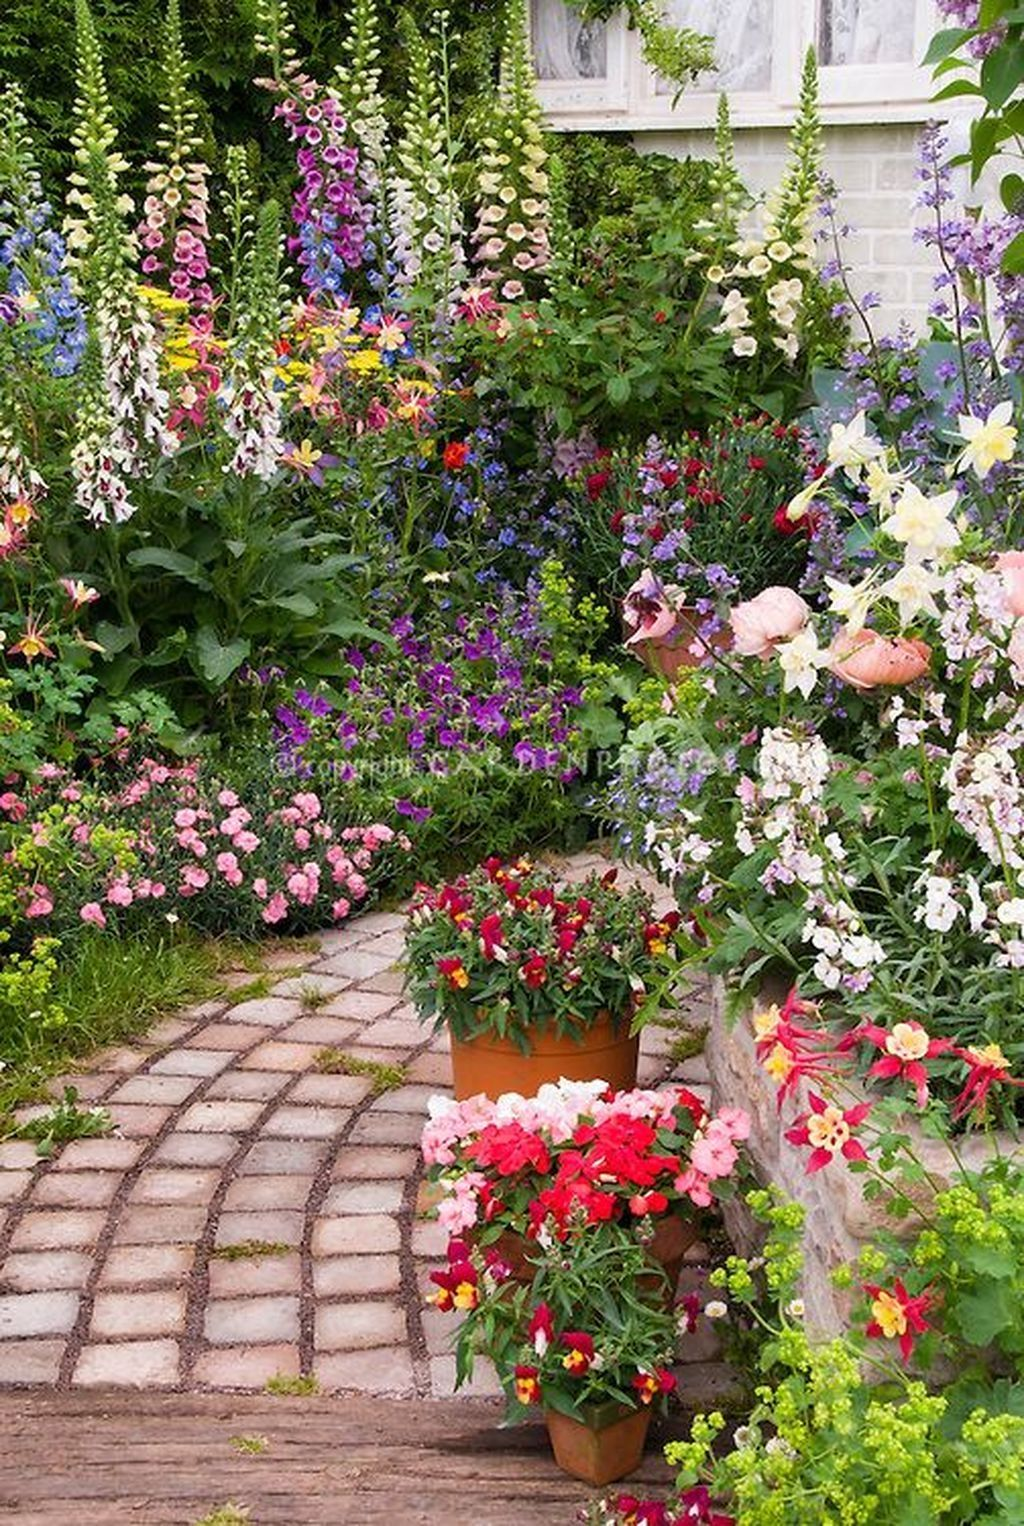 42 Lovely Small Flower Gardens And Plants Ideas For Your Front Yard Pimphomee Small Flower Gardens Flower Garden Plants Beautiful Flowers Garden